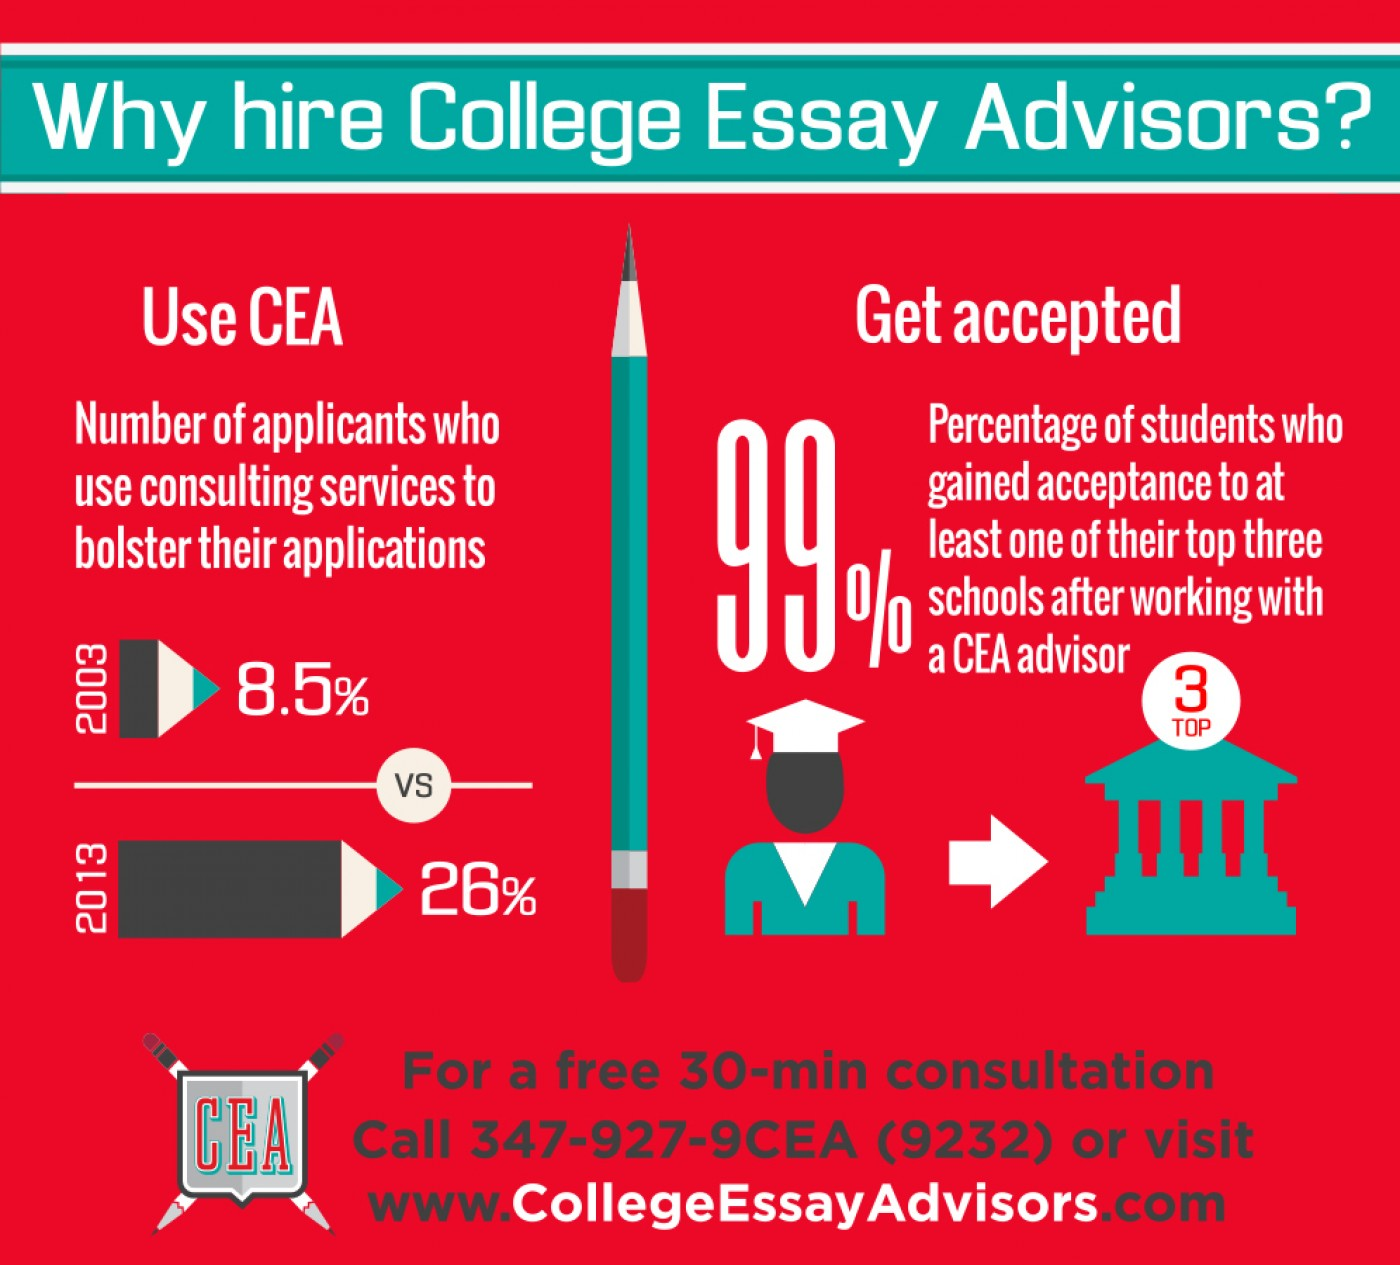 012 Essay Example College Advisors Why Hire Cea Nym Wondrous Duke Usc Tufts 1400